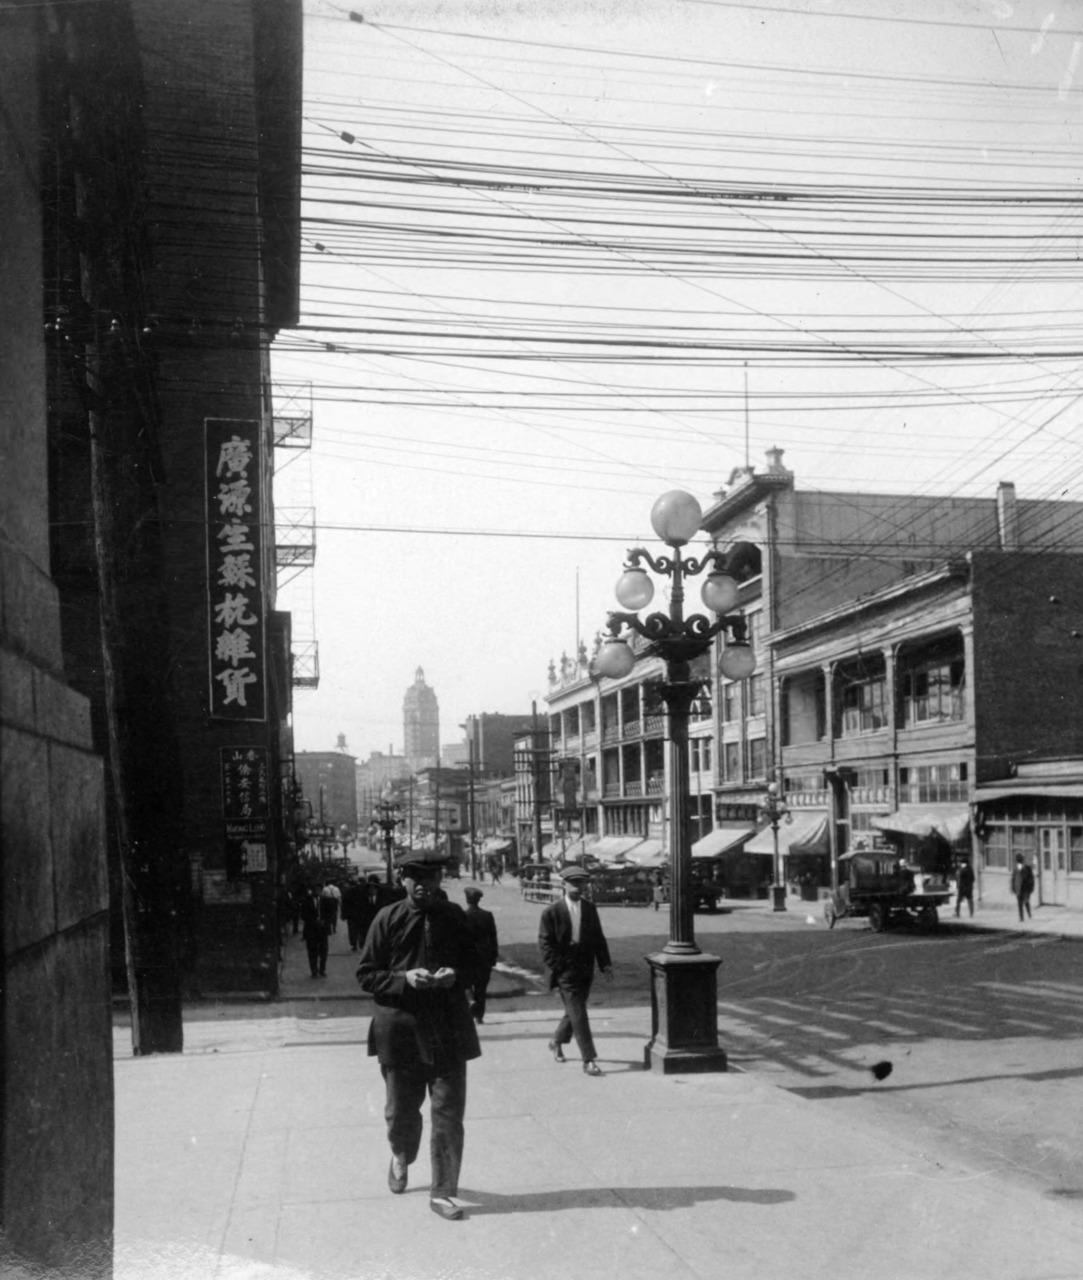 Chinatown, 1923 Source: DL Hollandy, Keystone-Mast Collection, UCR/California Museum of Photography, University of California                         at Riverside.